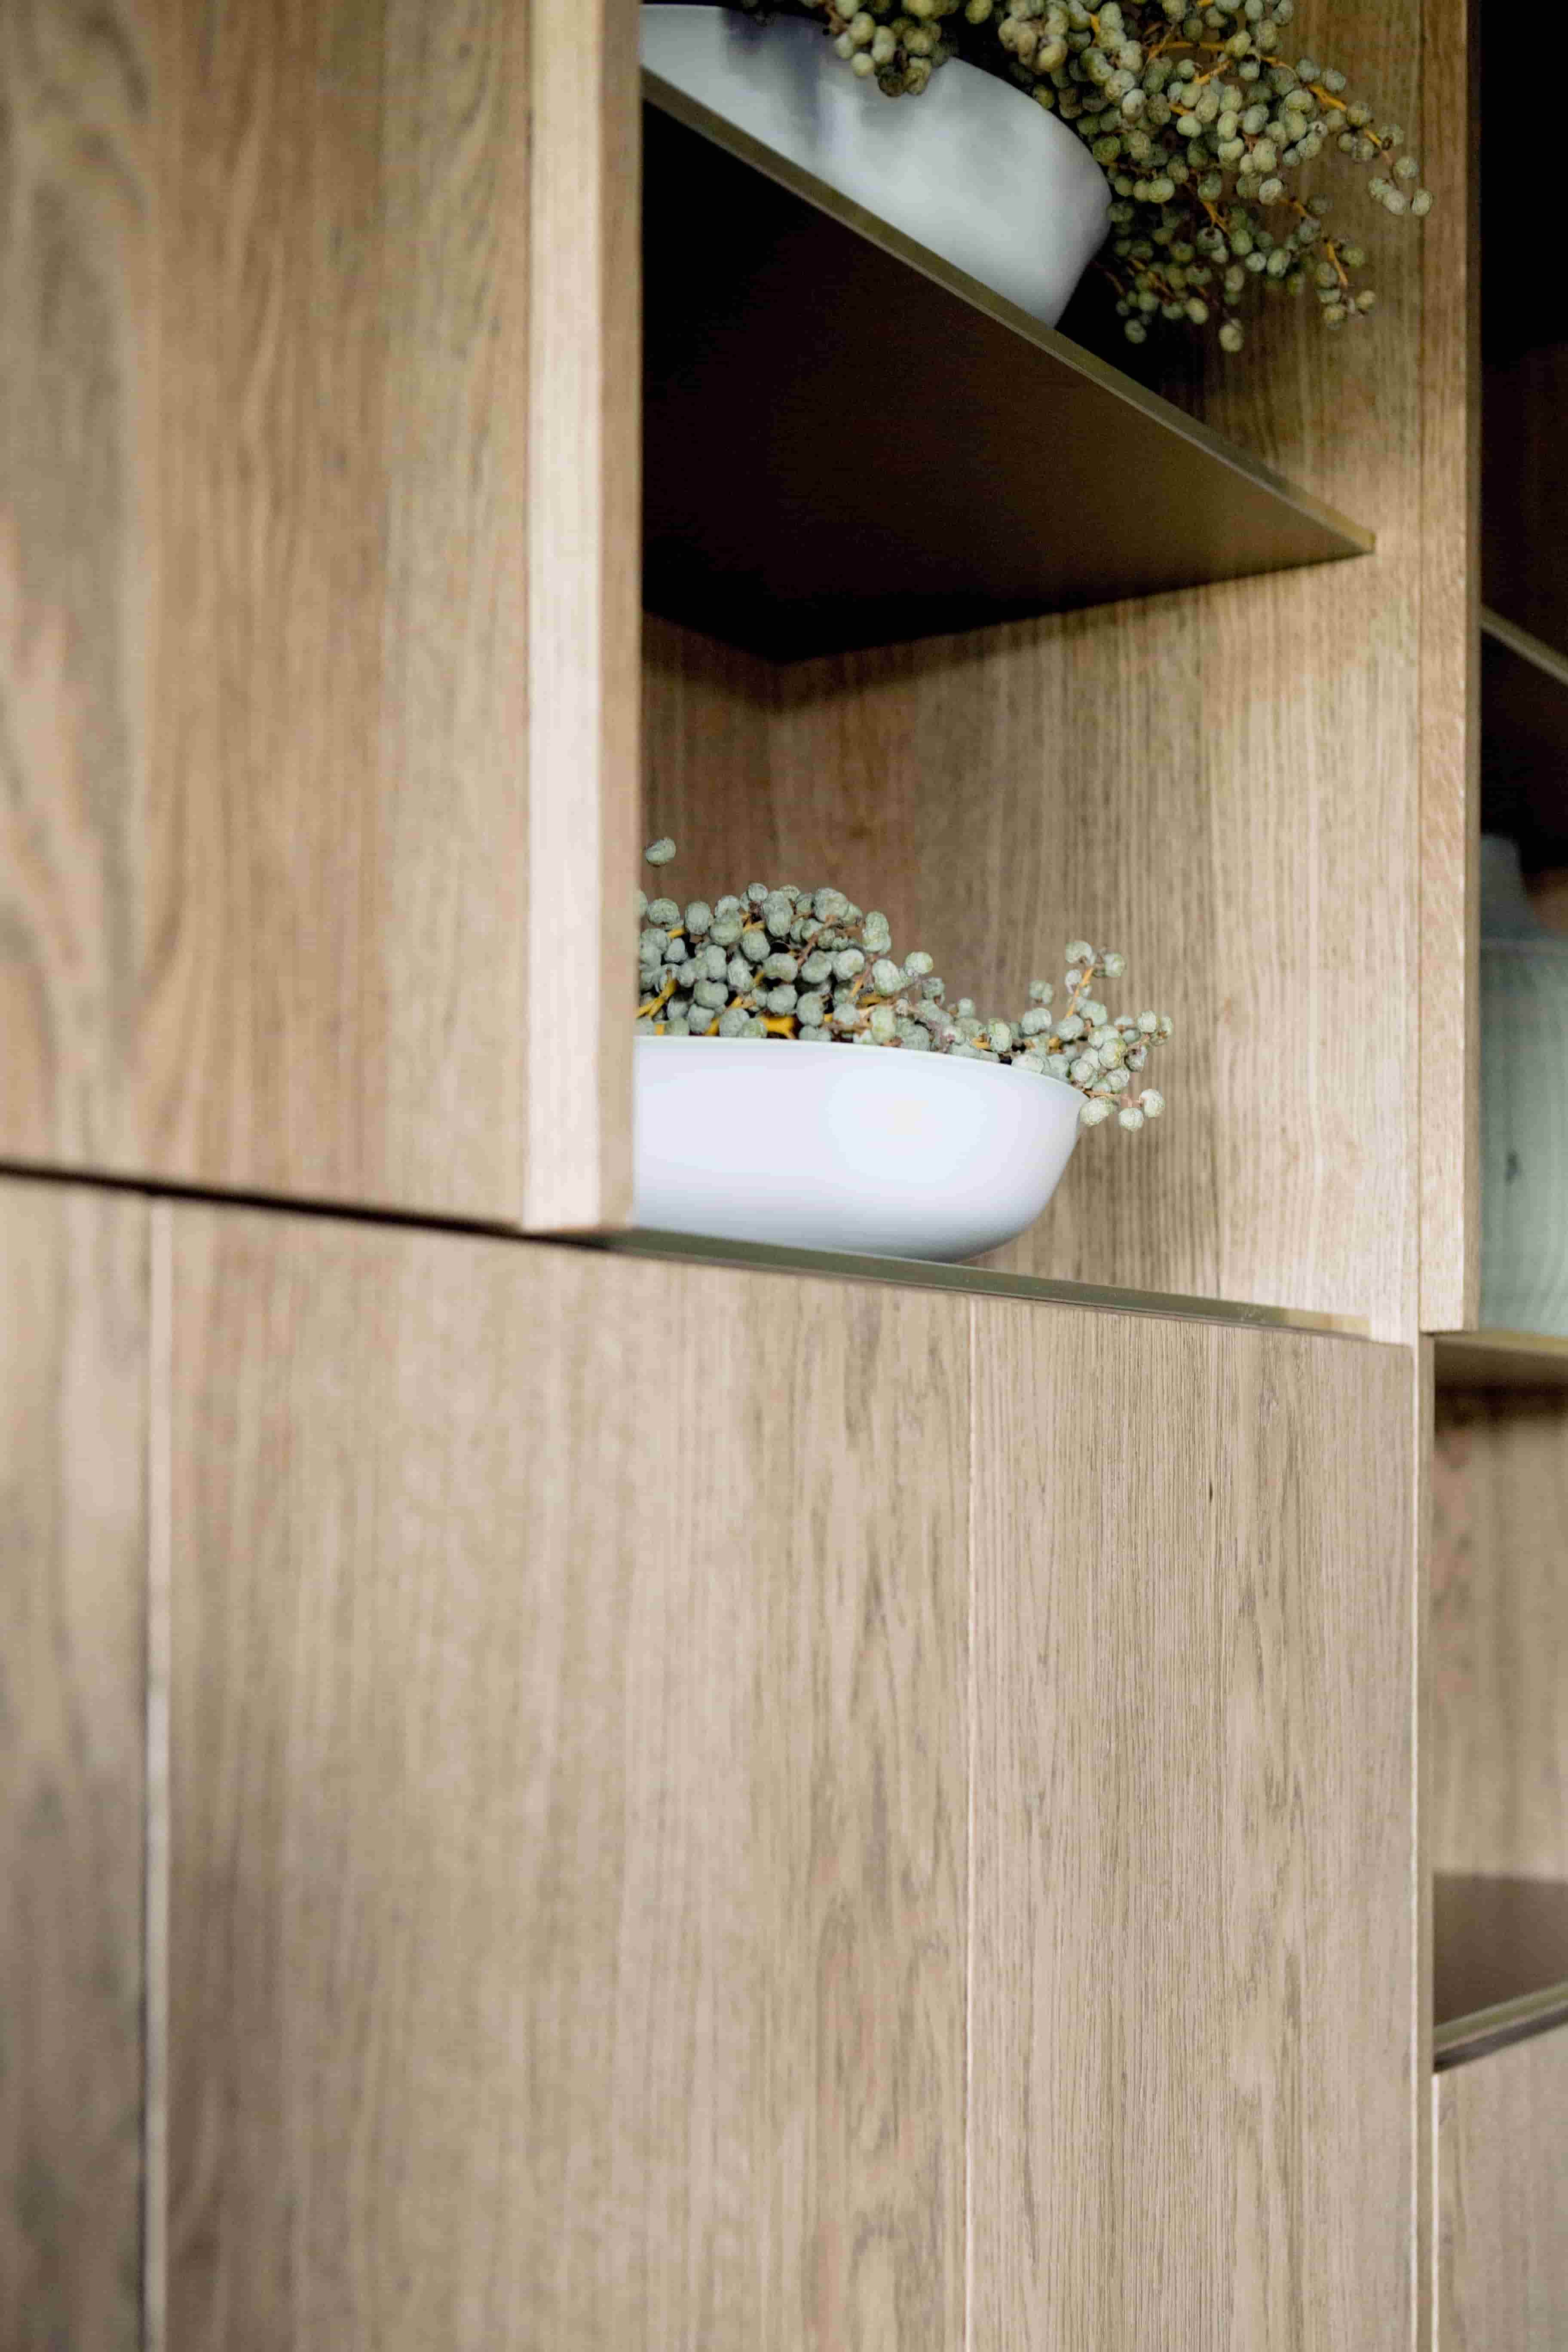 styling decoration van rietschoten design walnut wood custom closet anbiun enbiun enbium